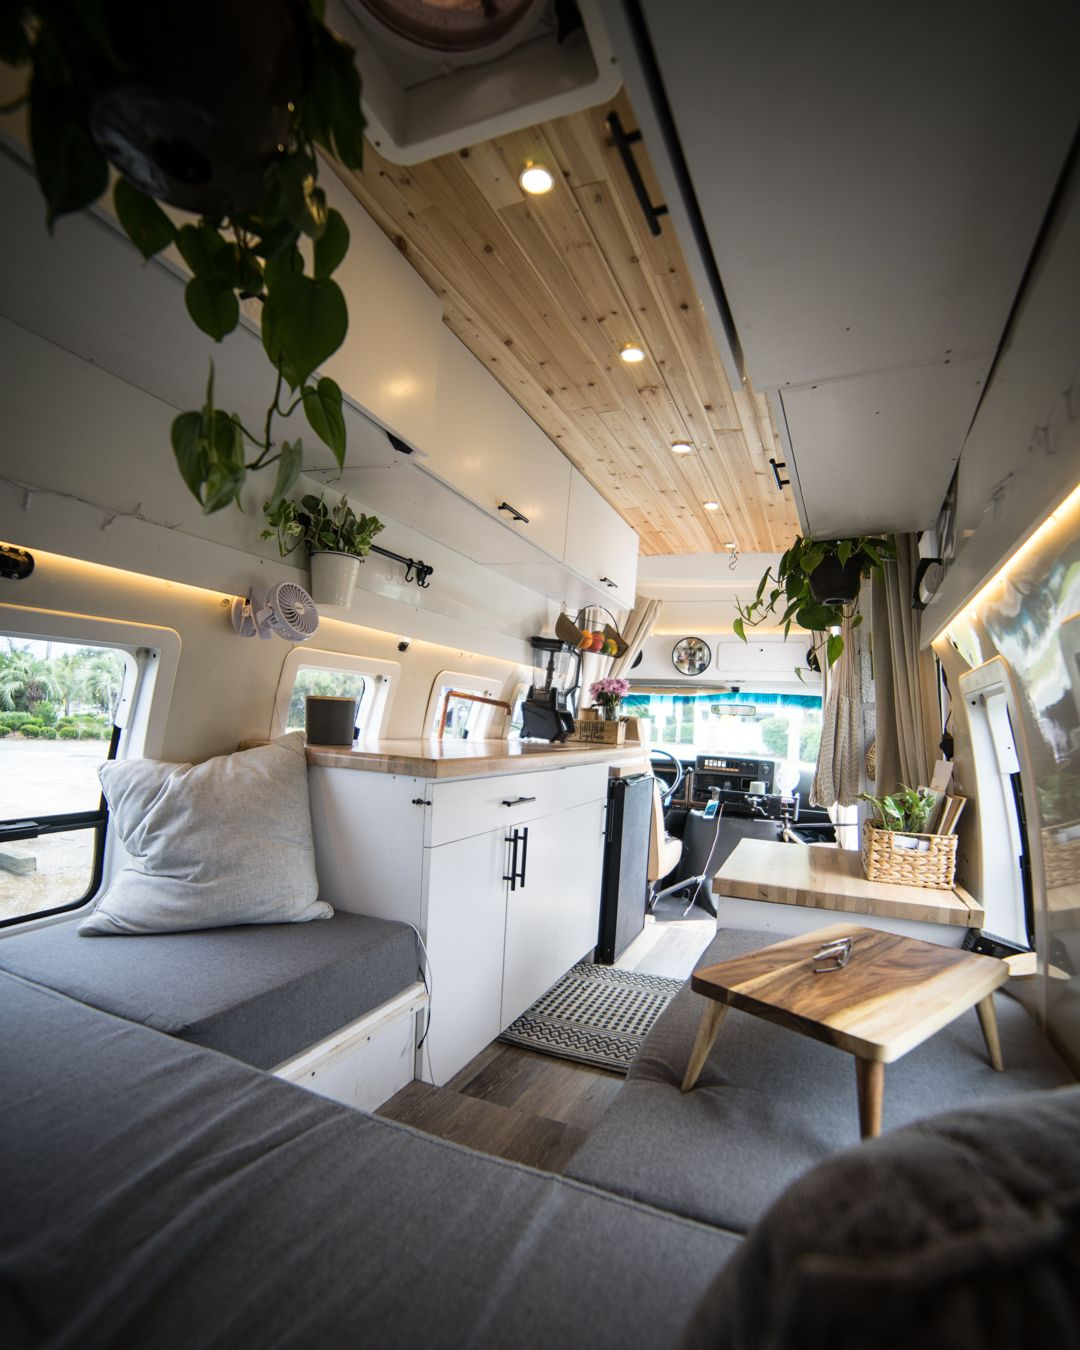 """ProjectVanlife � on Instagram: """"Beautiful and clean conversion by @a.strayproject discover more of it on her page! #vanconversion #skoolieconversion #sprinterconversion…"""""""